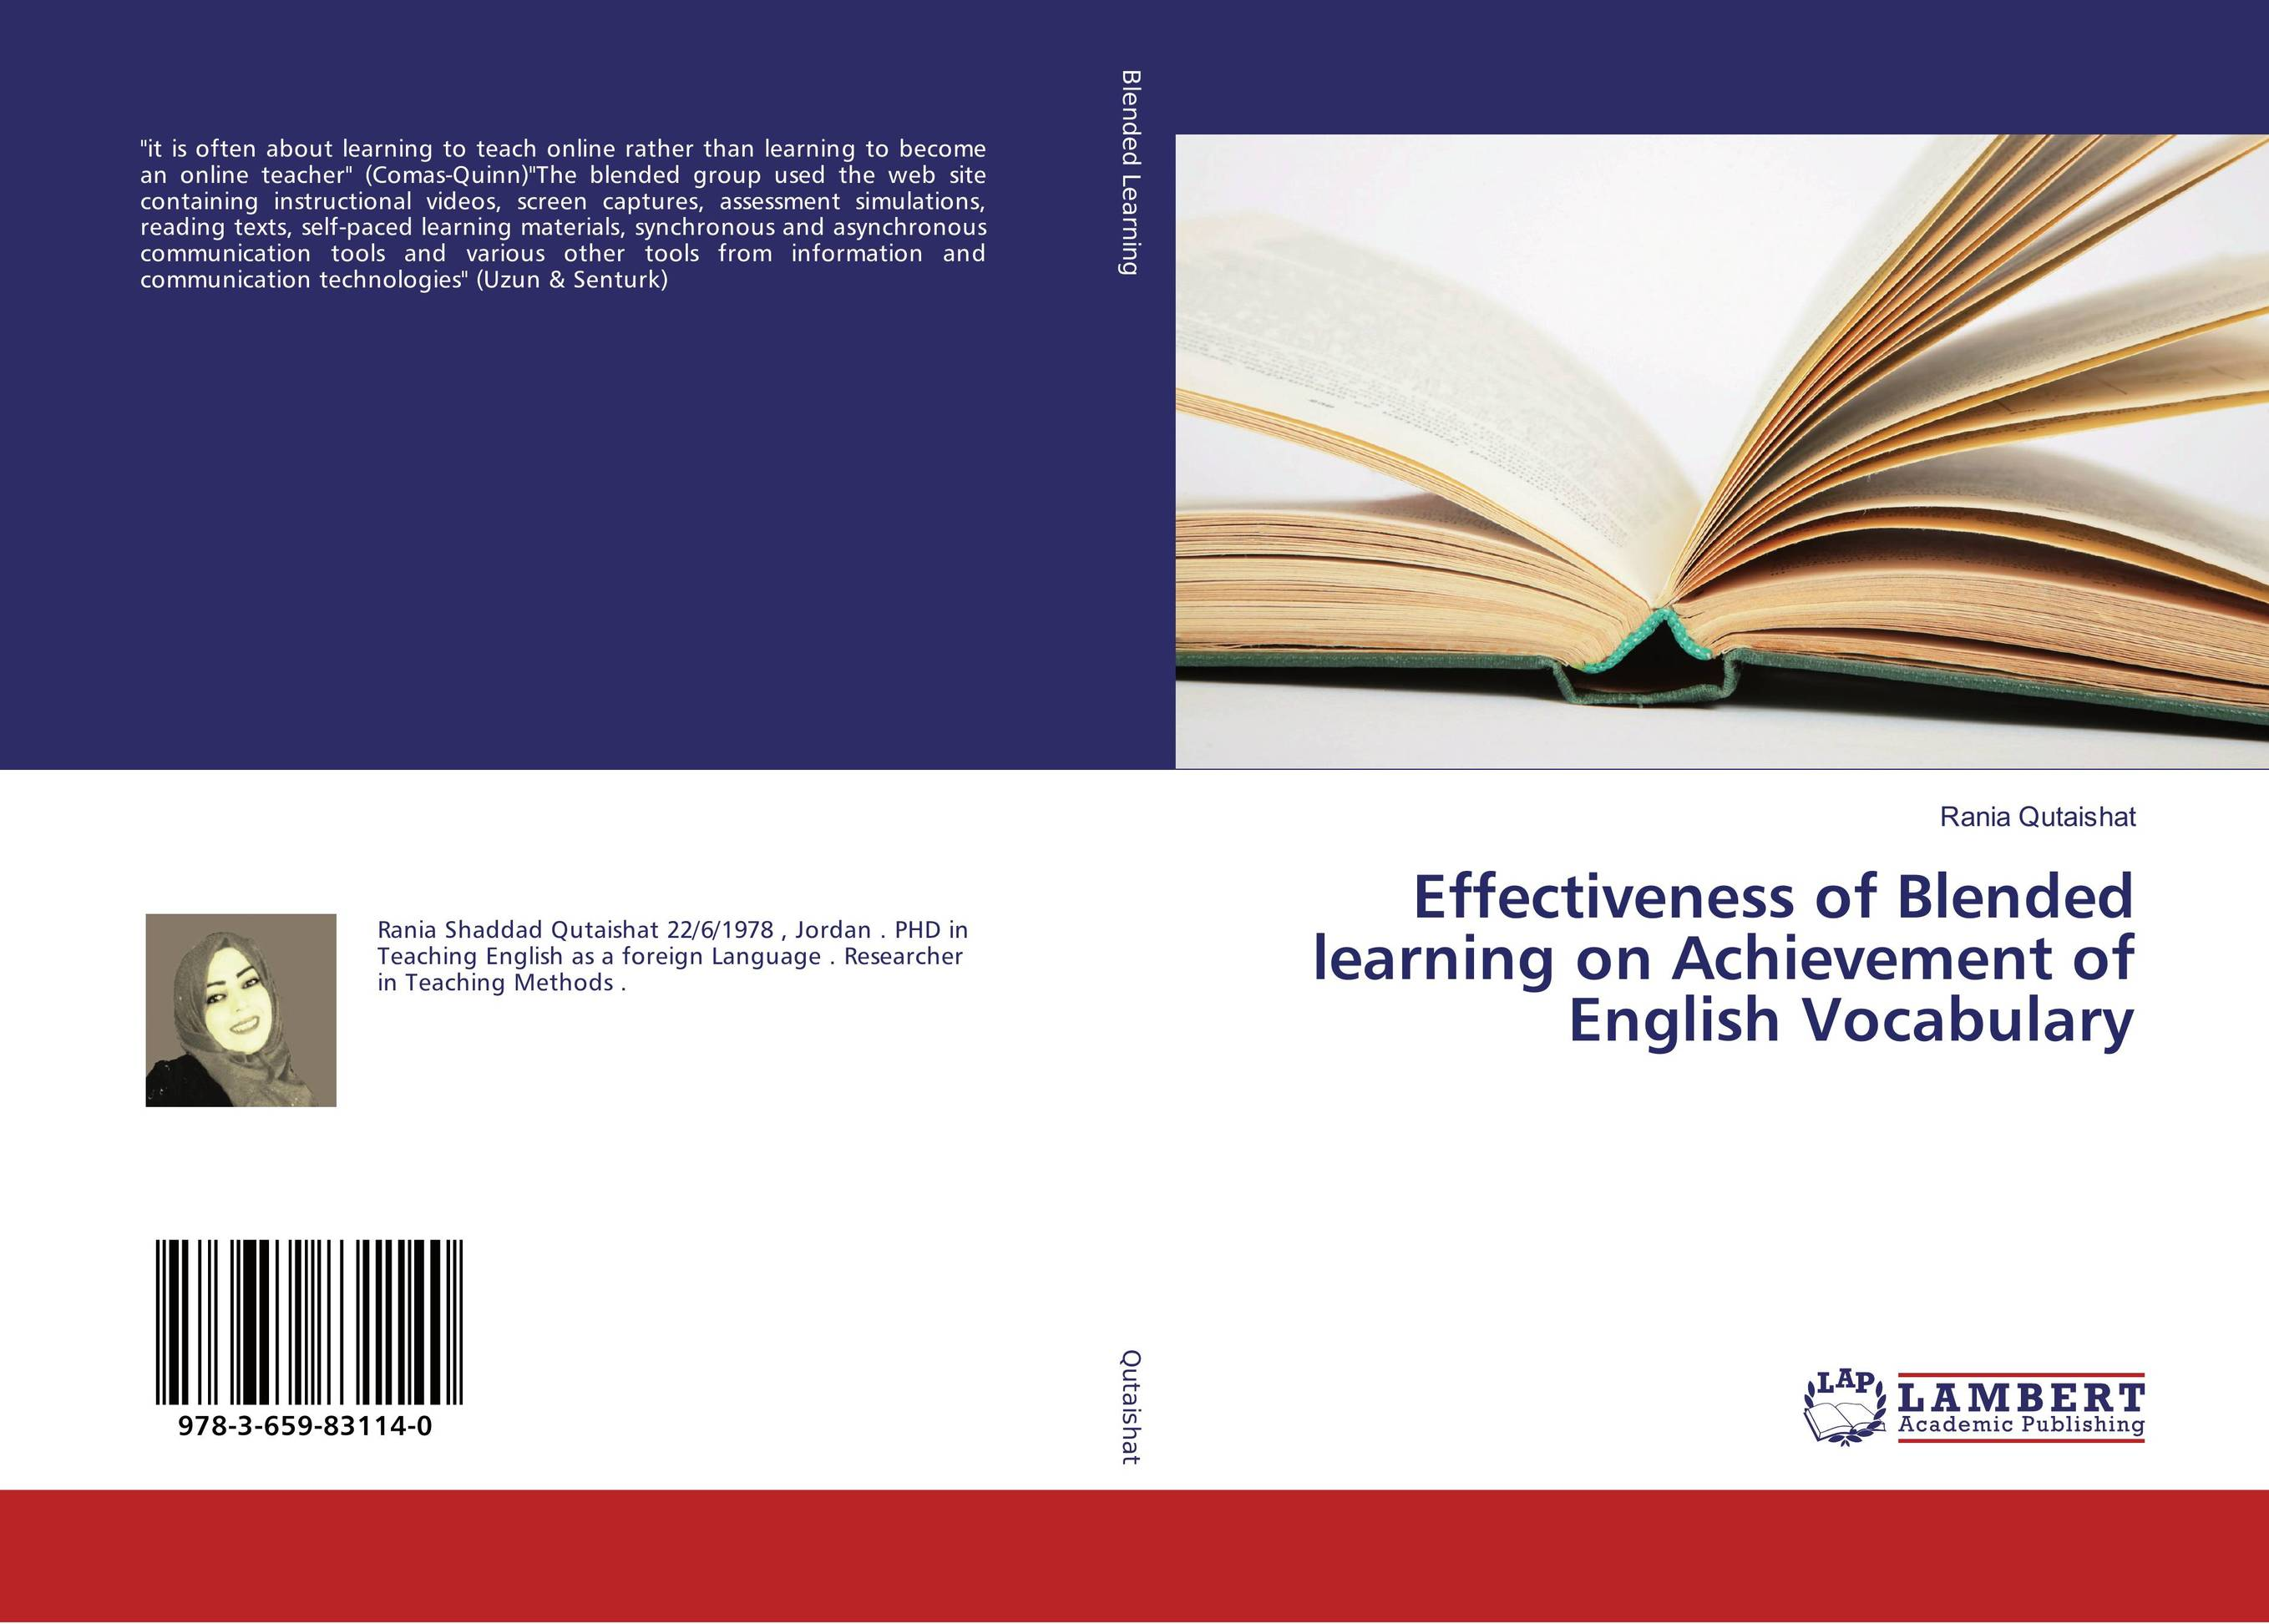 Effectiveness of Blended learning on Achievement of English Vocabulary effectiveness of blended learning on achievement of english vocabulary